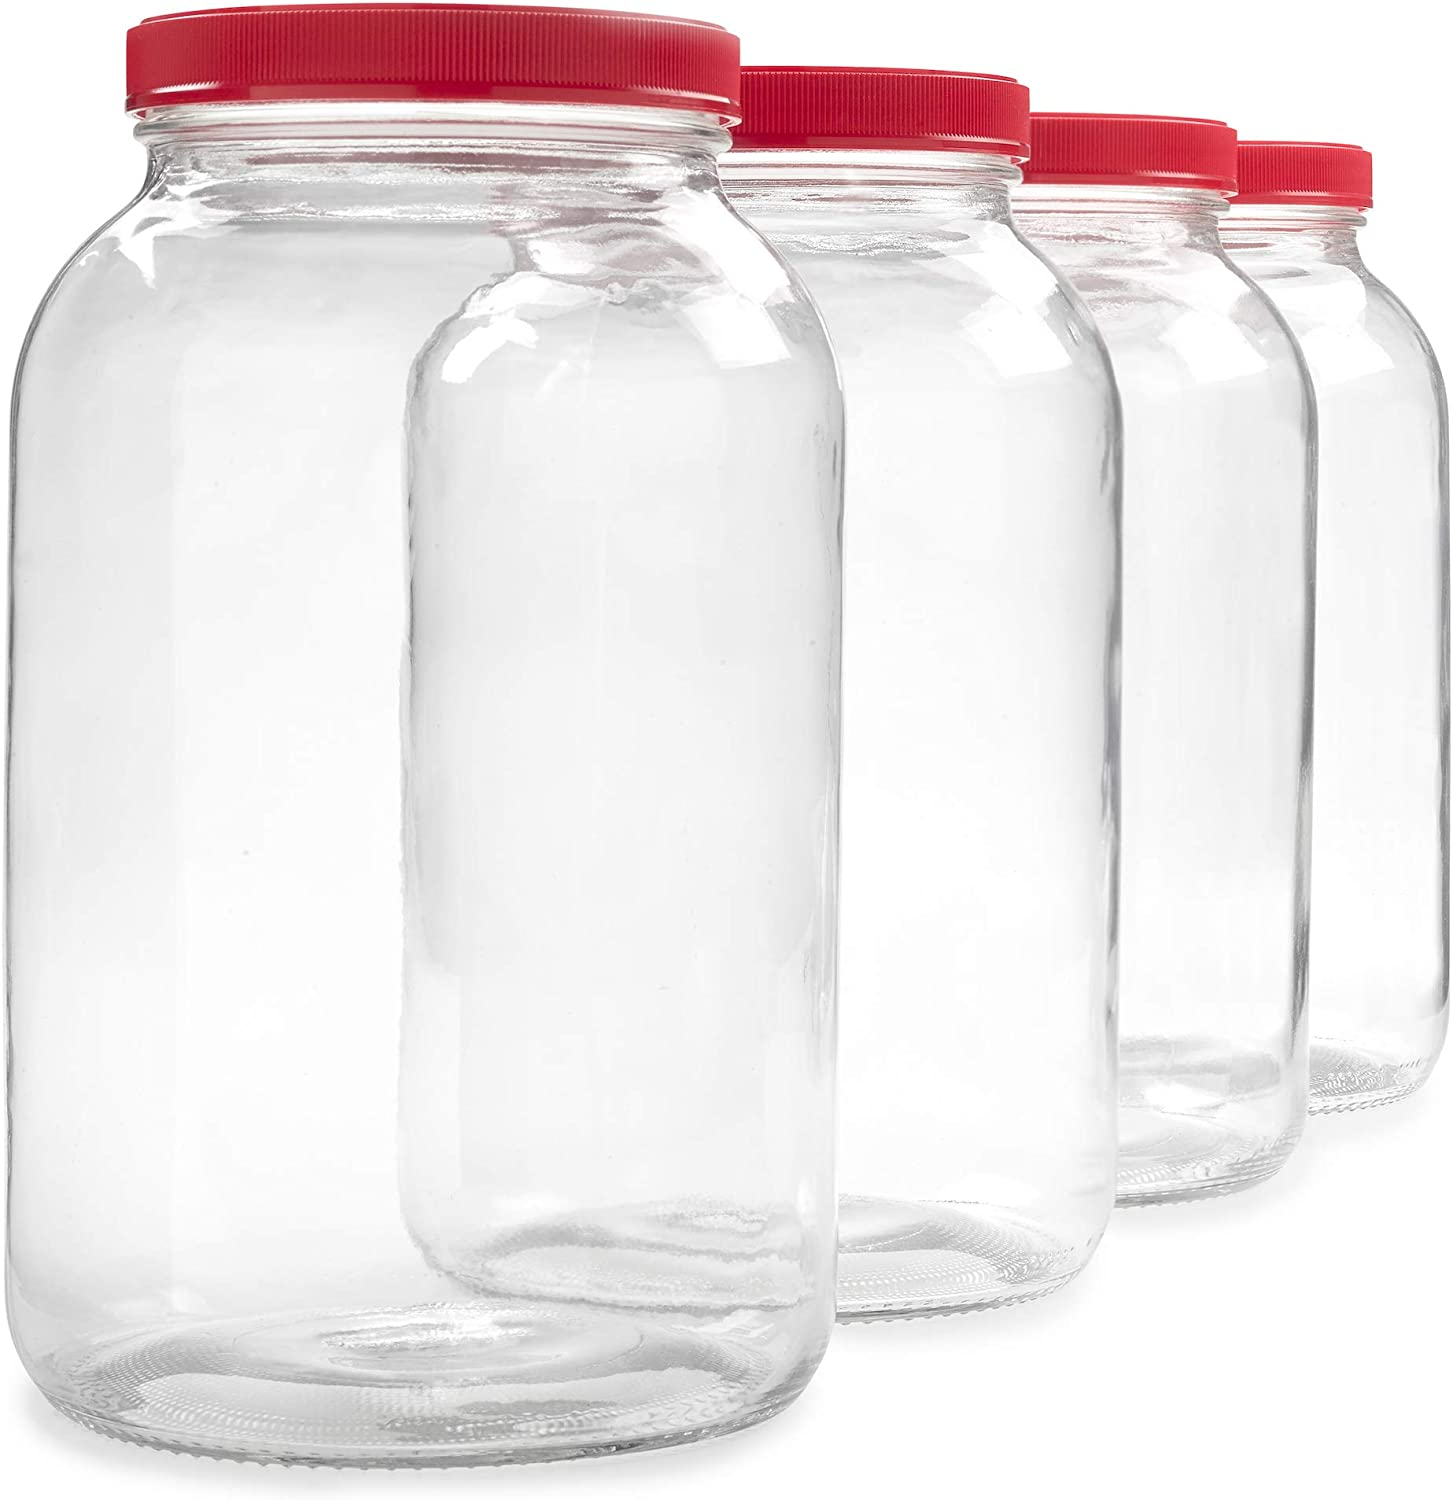 4 Pack - 1 Gallon Glass Jar w/Plastic Airtight Lid, Muslin Cloth, Rubber Band - Made in USA, Wide Mouth Easy to Clean - BPA Free - Kombucha, Kefir, Canning, Sun Tea, Fermentation, Food Storage